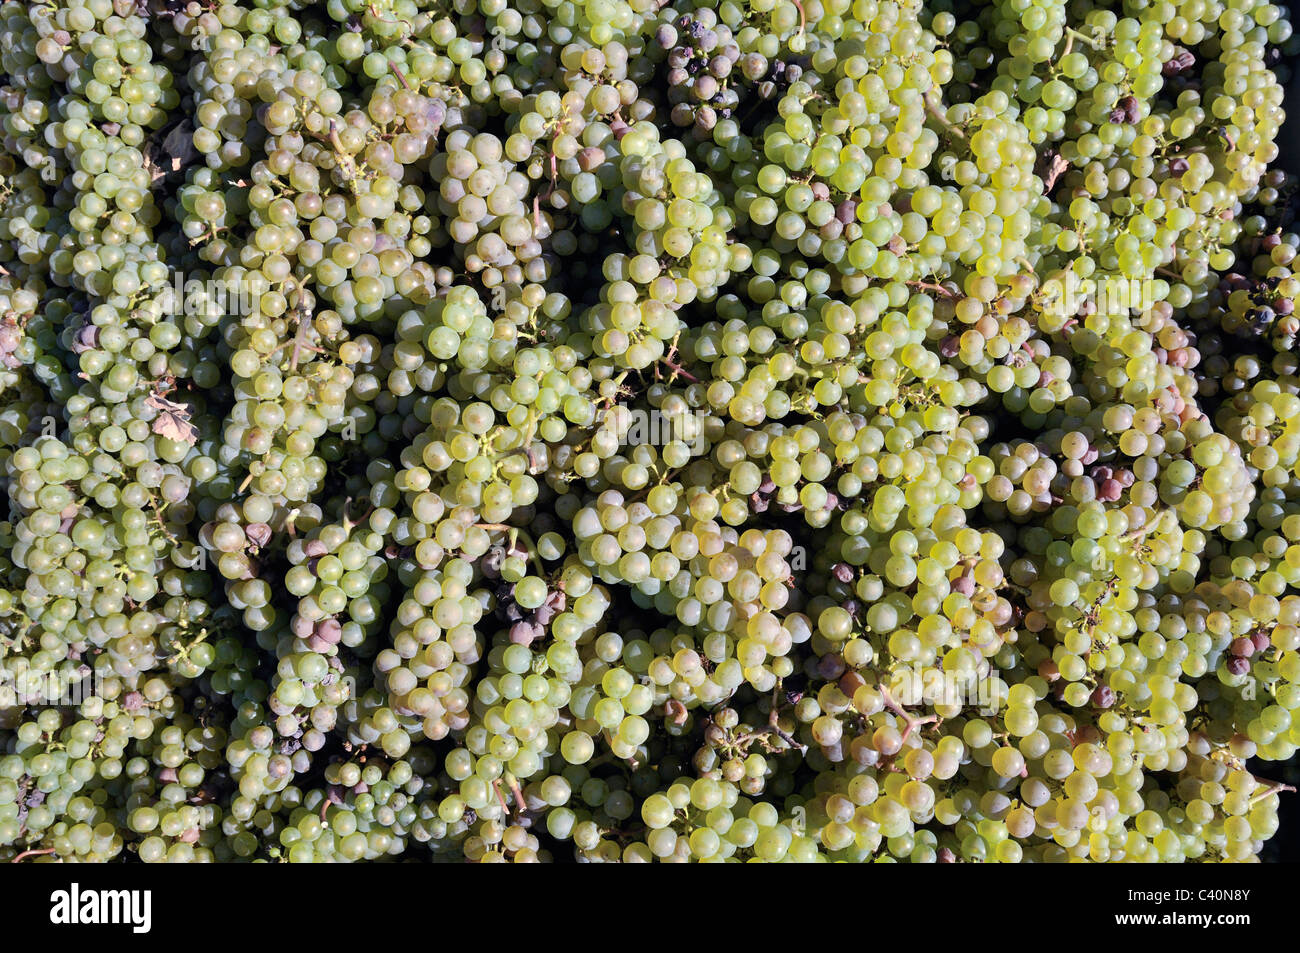 Botany, Germany, Europe, agriculture, close-up, useful plant, fruit, grapes, clusters, vinifera, Vitaceae, Vitis, Stock Photo